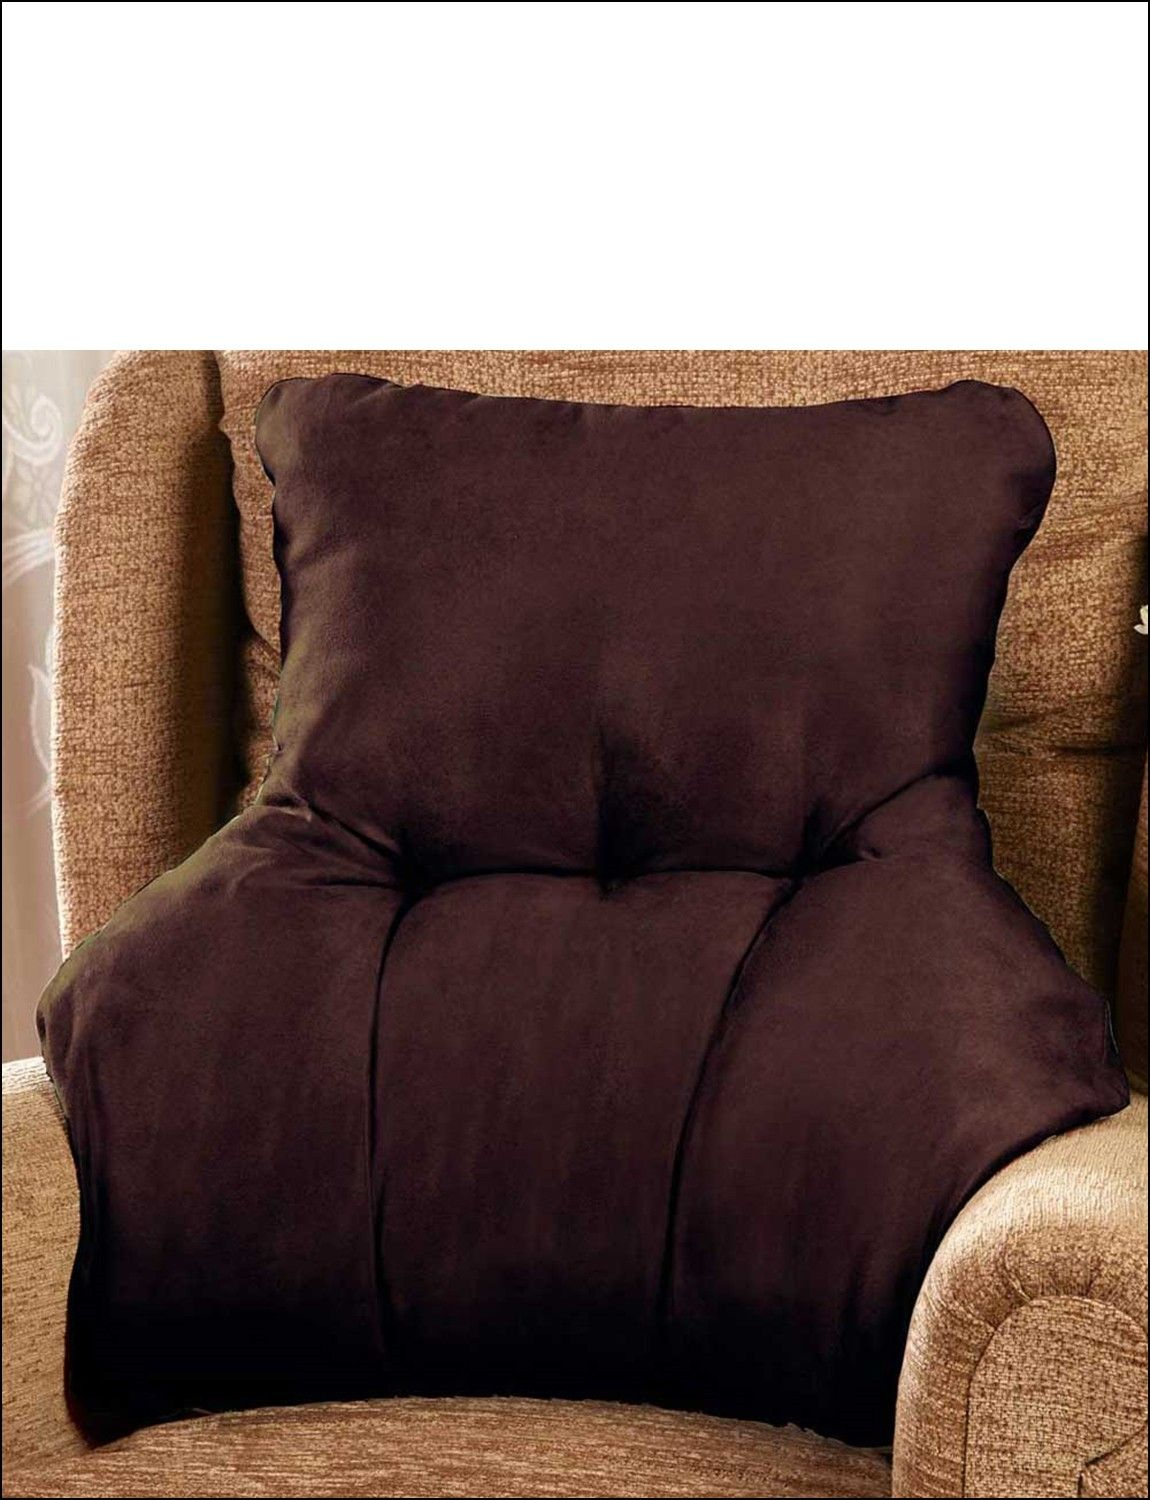 Foam Refill Sofa Cushions Sofas Undeniably Create Our Lives So Much More Comfy